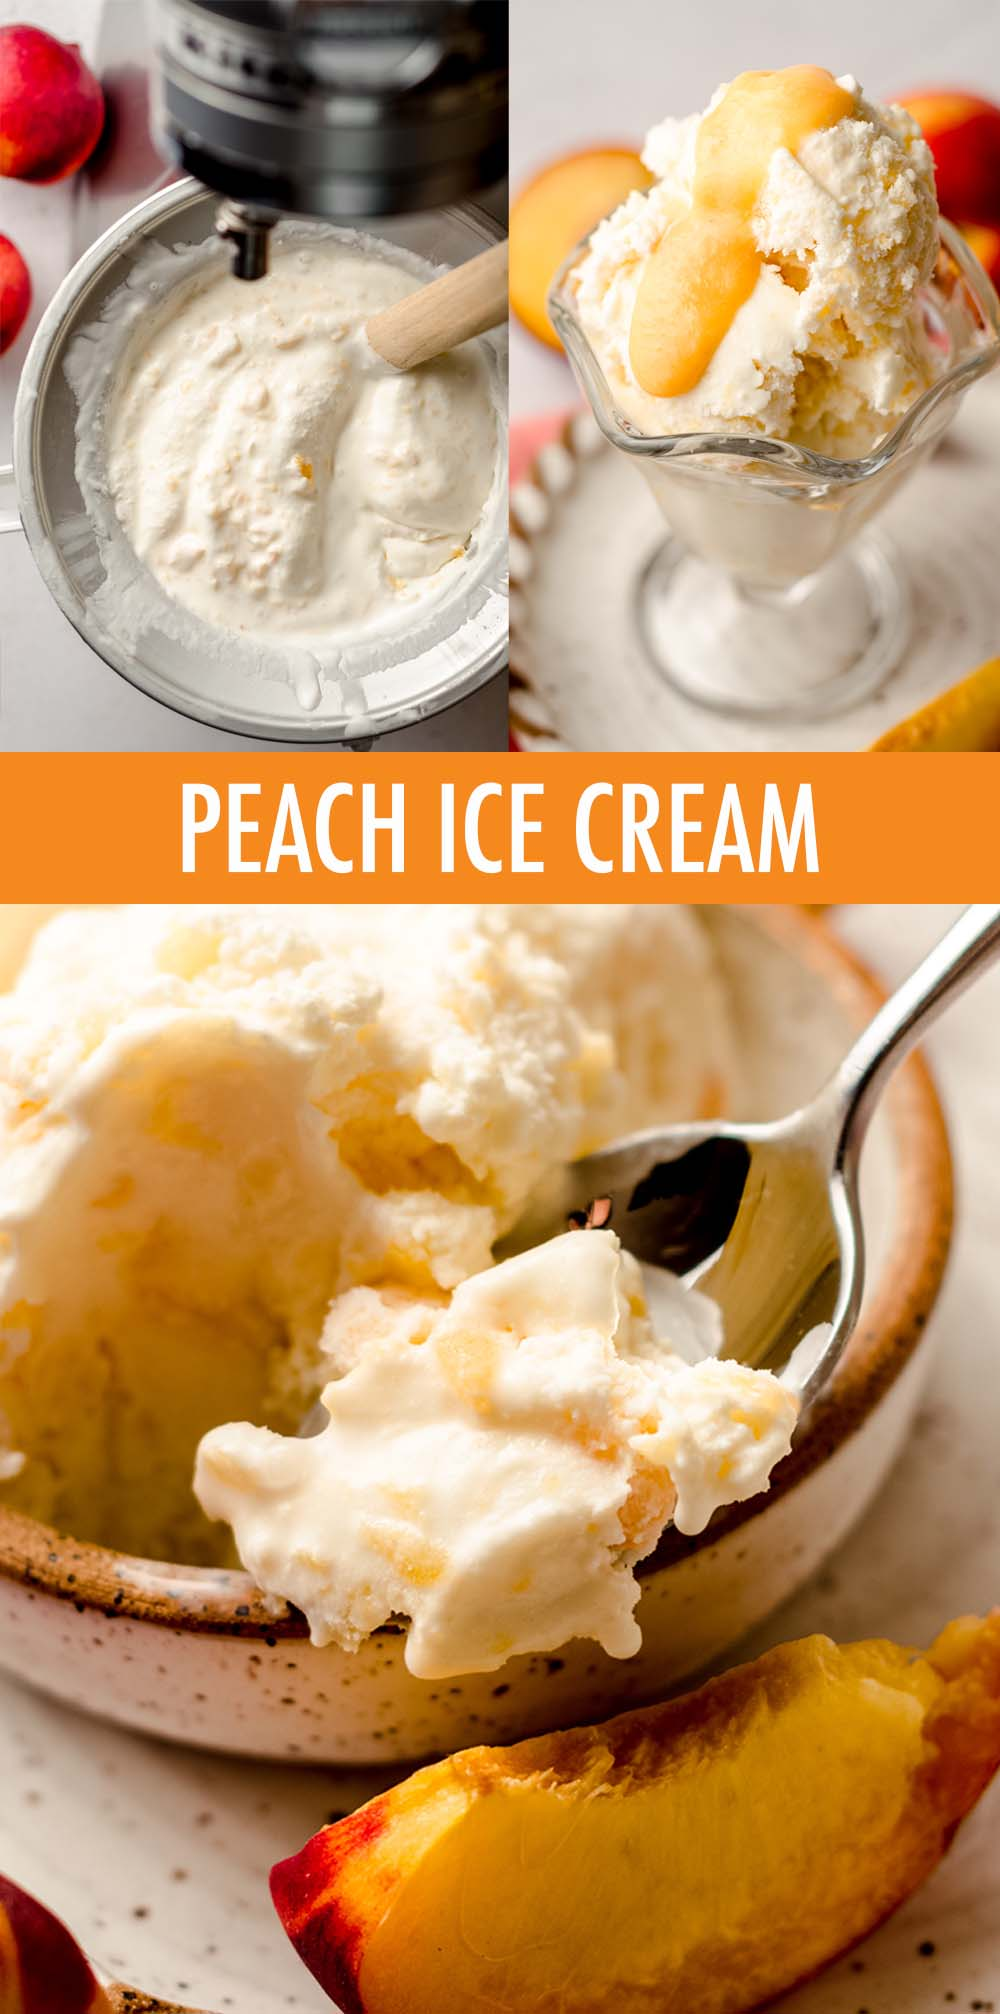 Learn how to make homemade peach ice cream using fresh peaches, a few basic ingredients, and your ice cream maker.